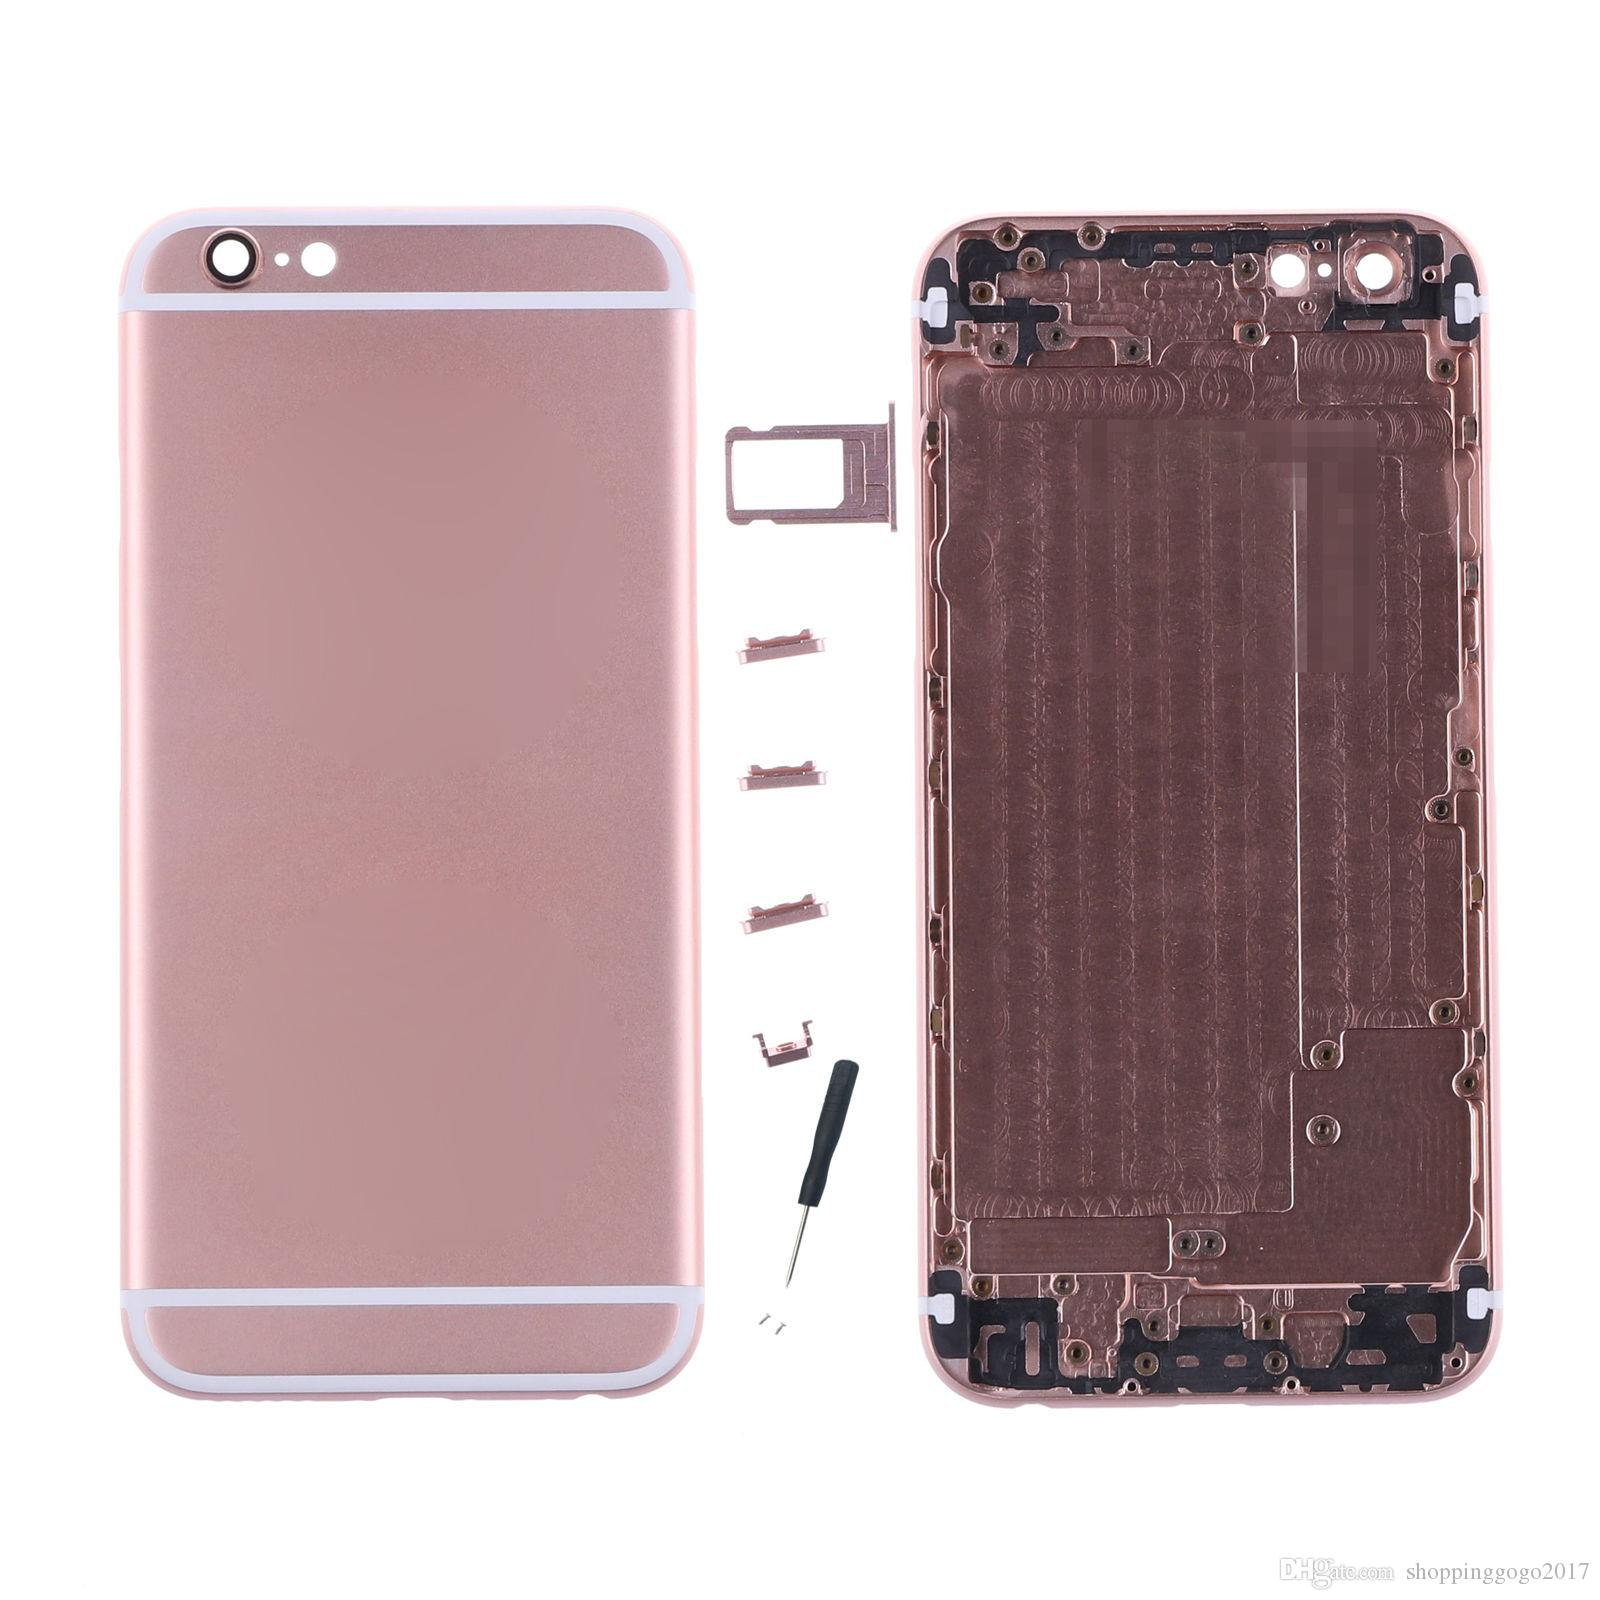 Replcement Cover for IPhone 6S Back Metal Housing for 6S Rear ...